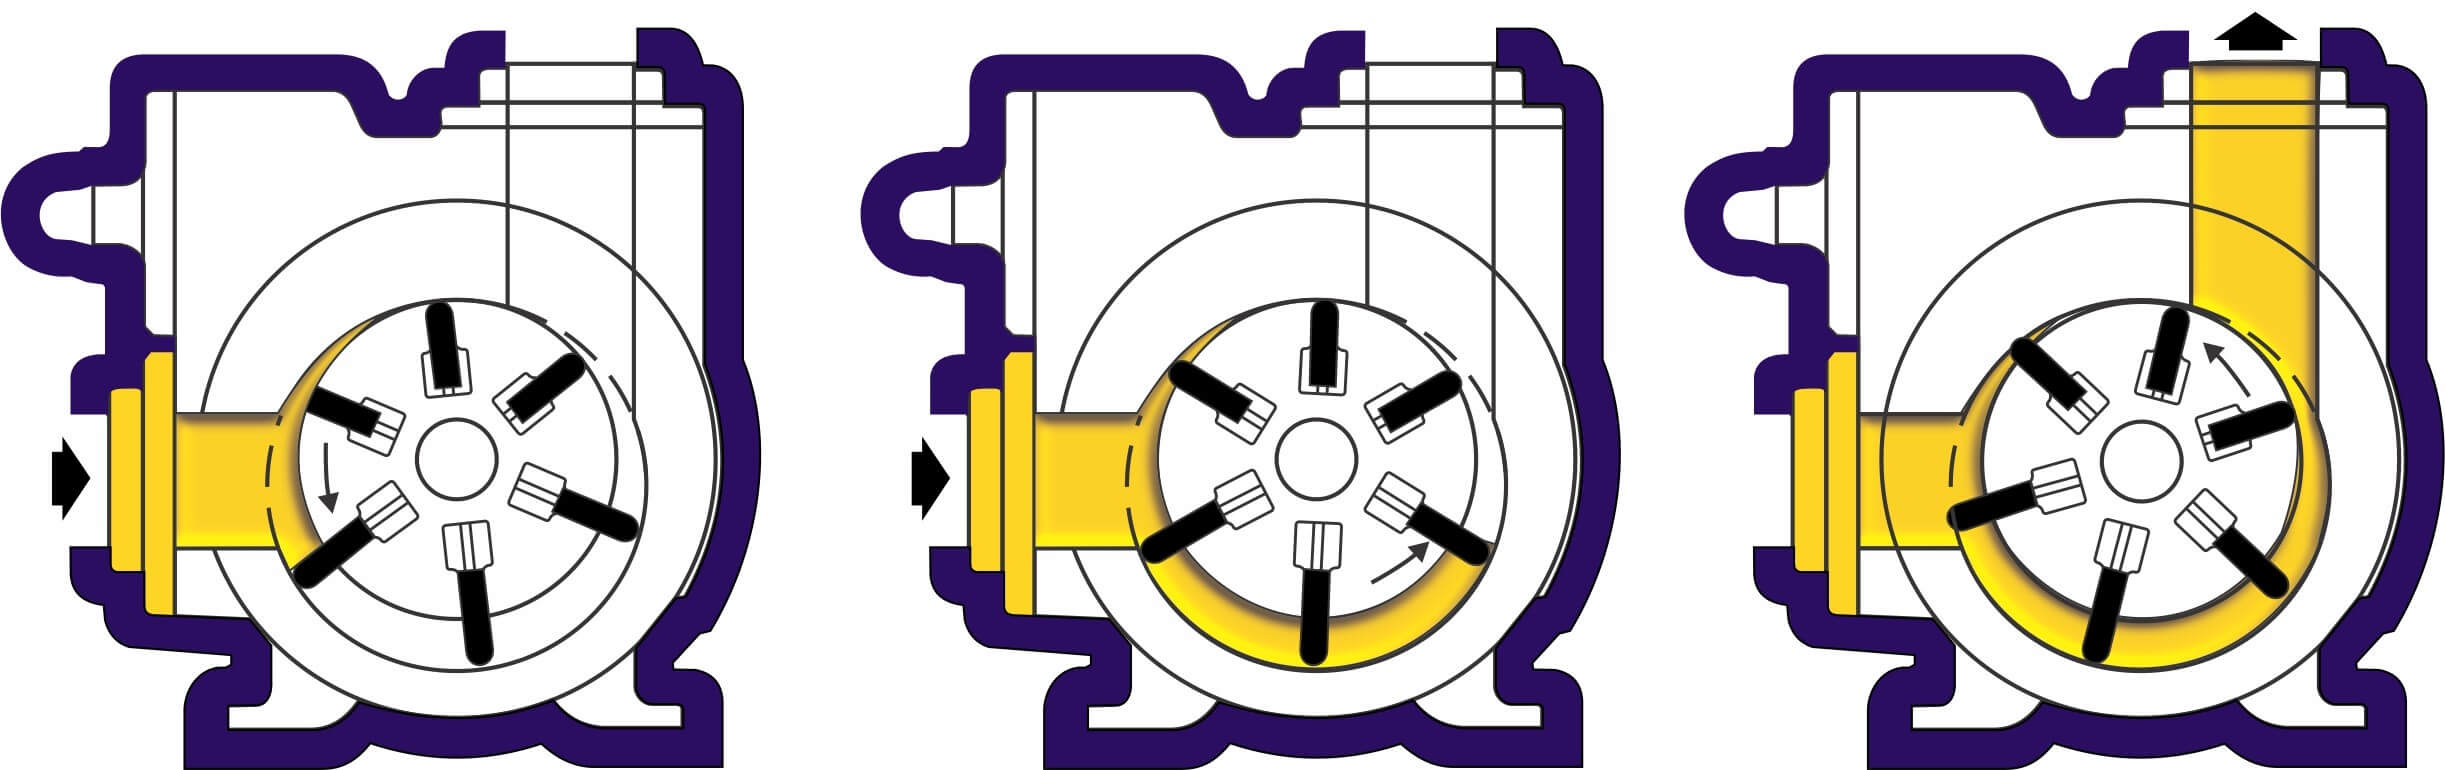 Vane Pump Working Principle